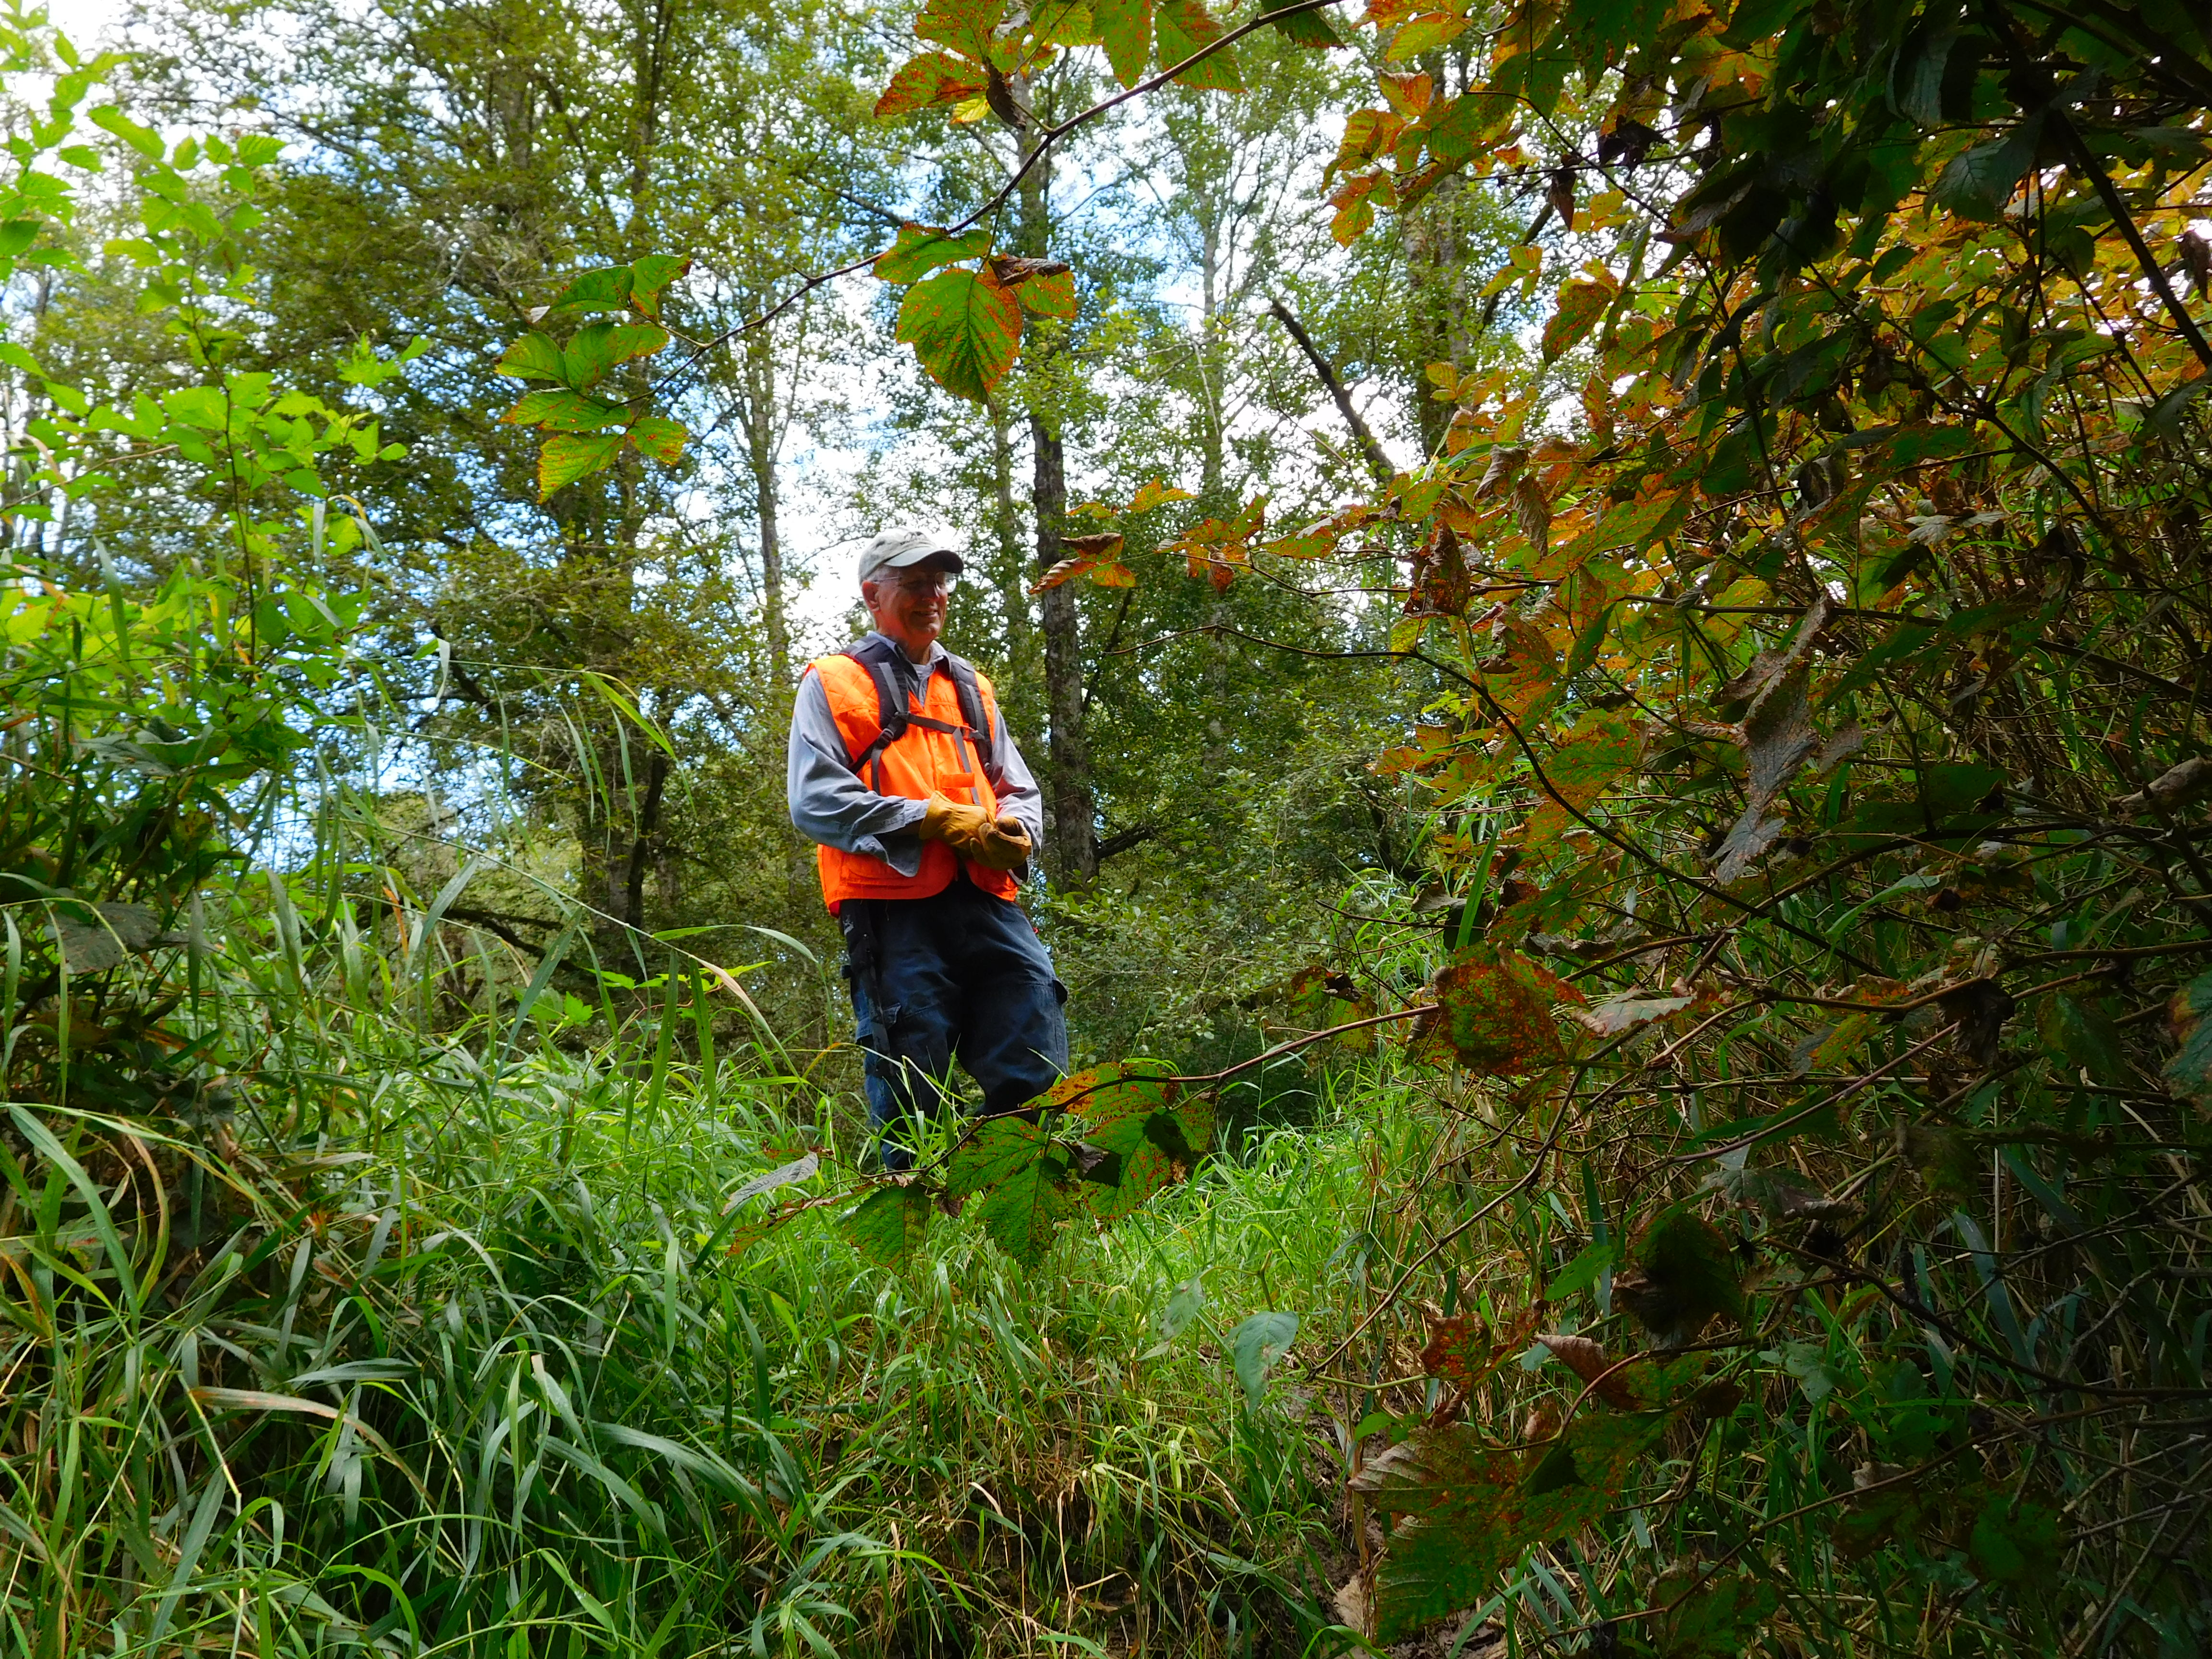 Volunteer land stewards are integral in managing Skagit Land Trust properties. Photograph credit: Skagit Land Trust staff.